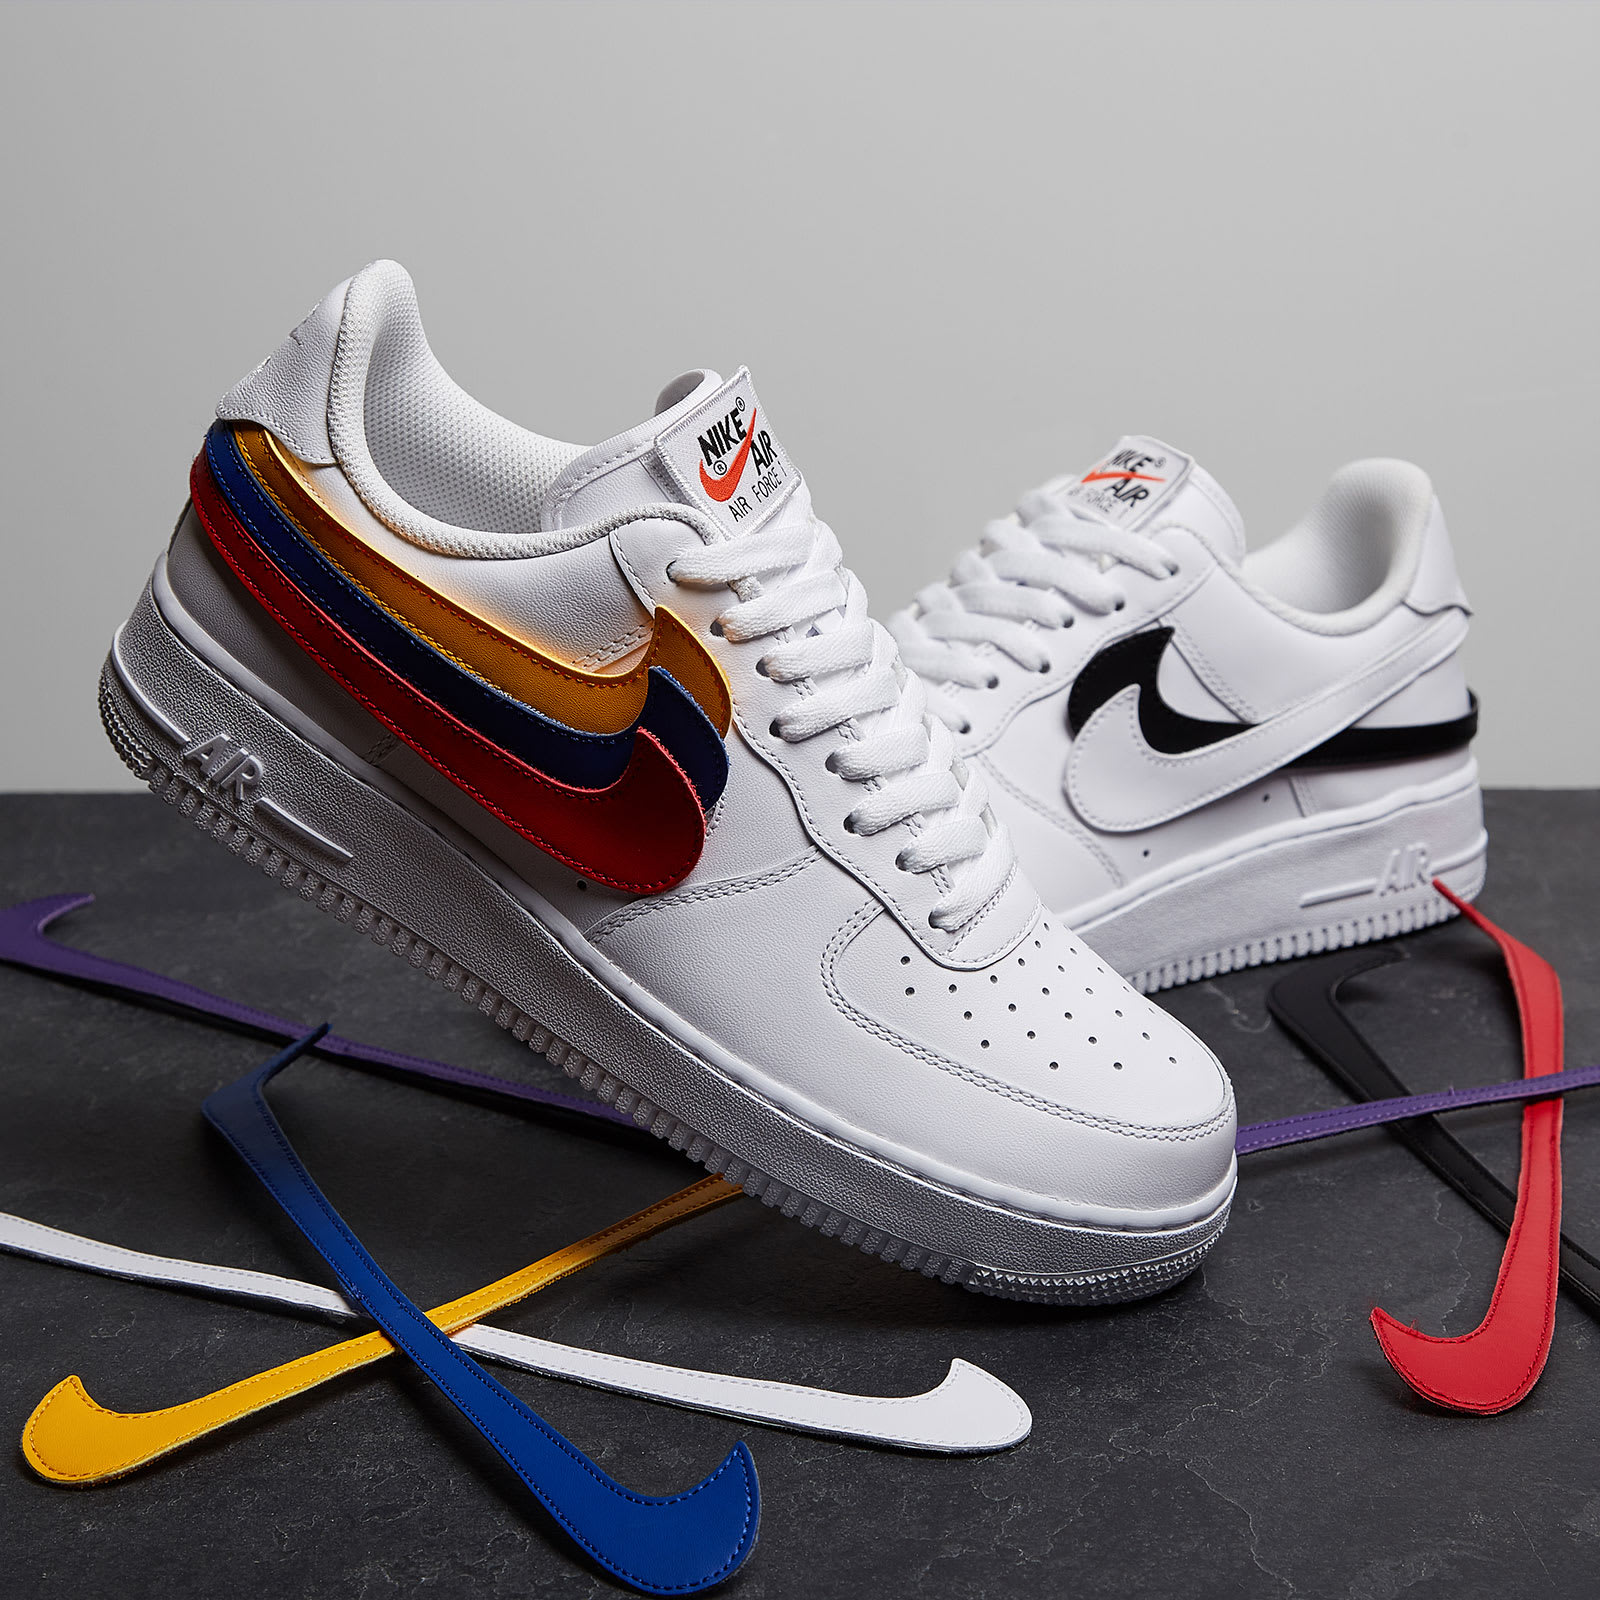 best website dd73a bac9a With a legacy dating back to the early 1980s, the Air Force 1 is one of the  most storied and celebrated sneaker lineages of all time.